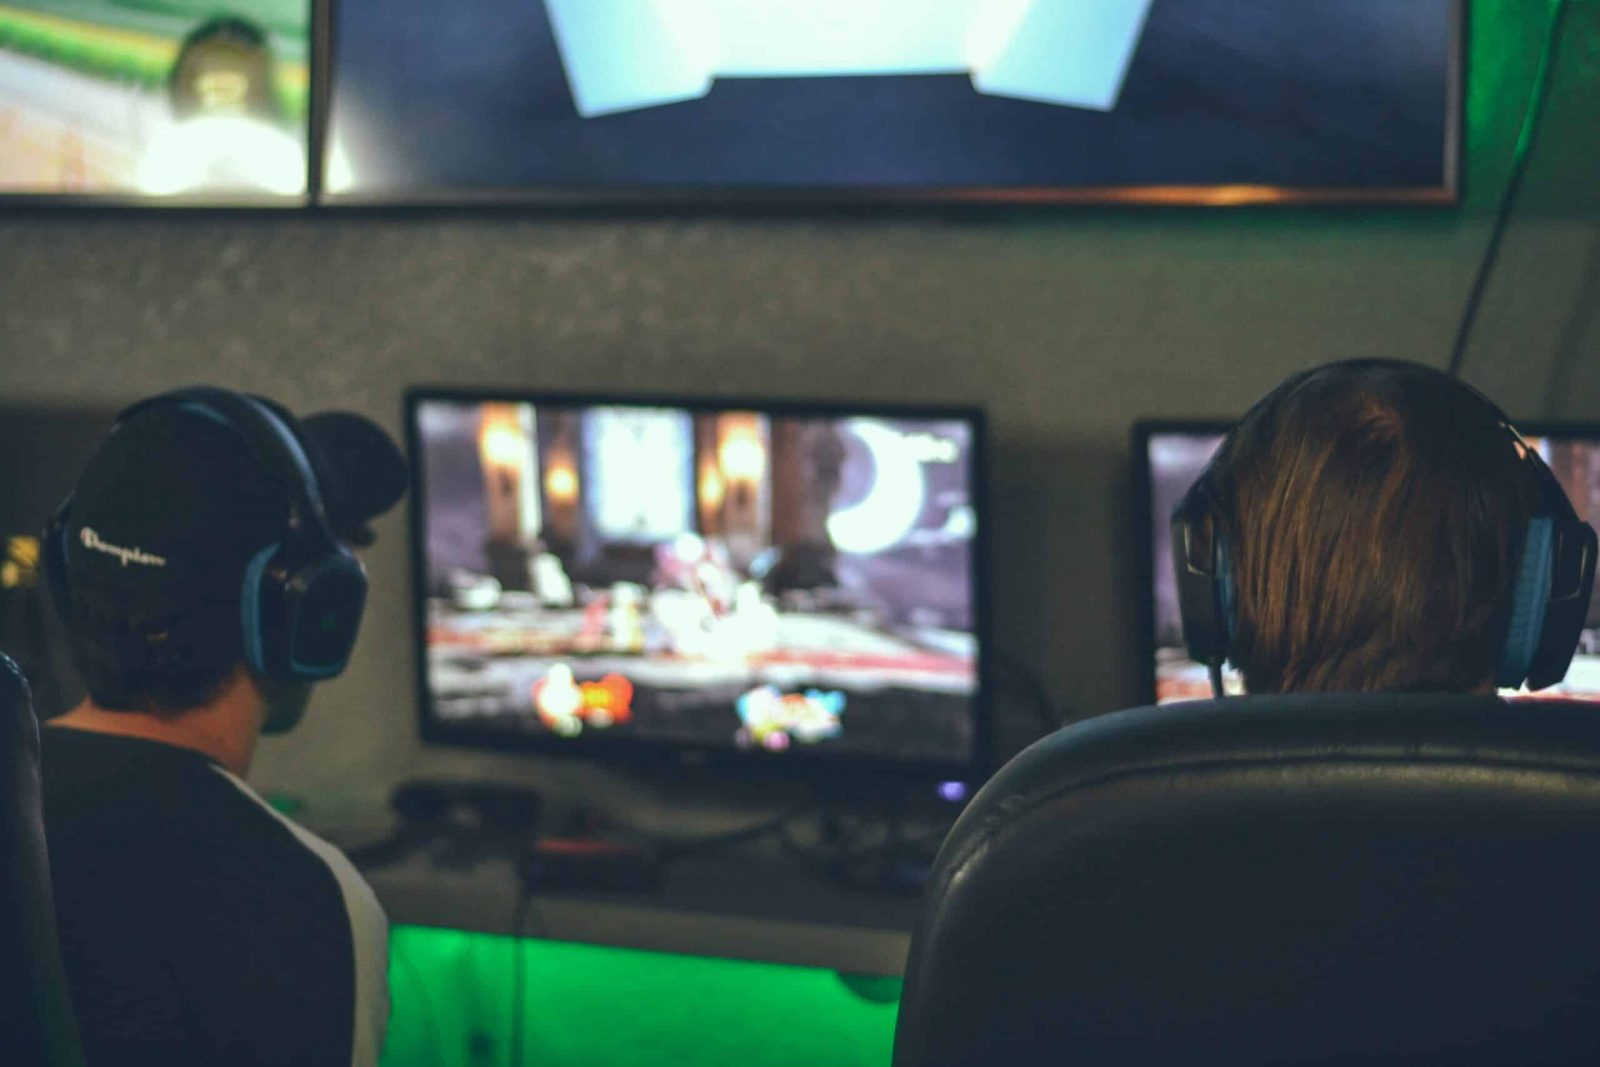 Image of two people gaming.